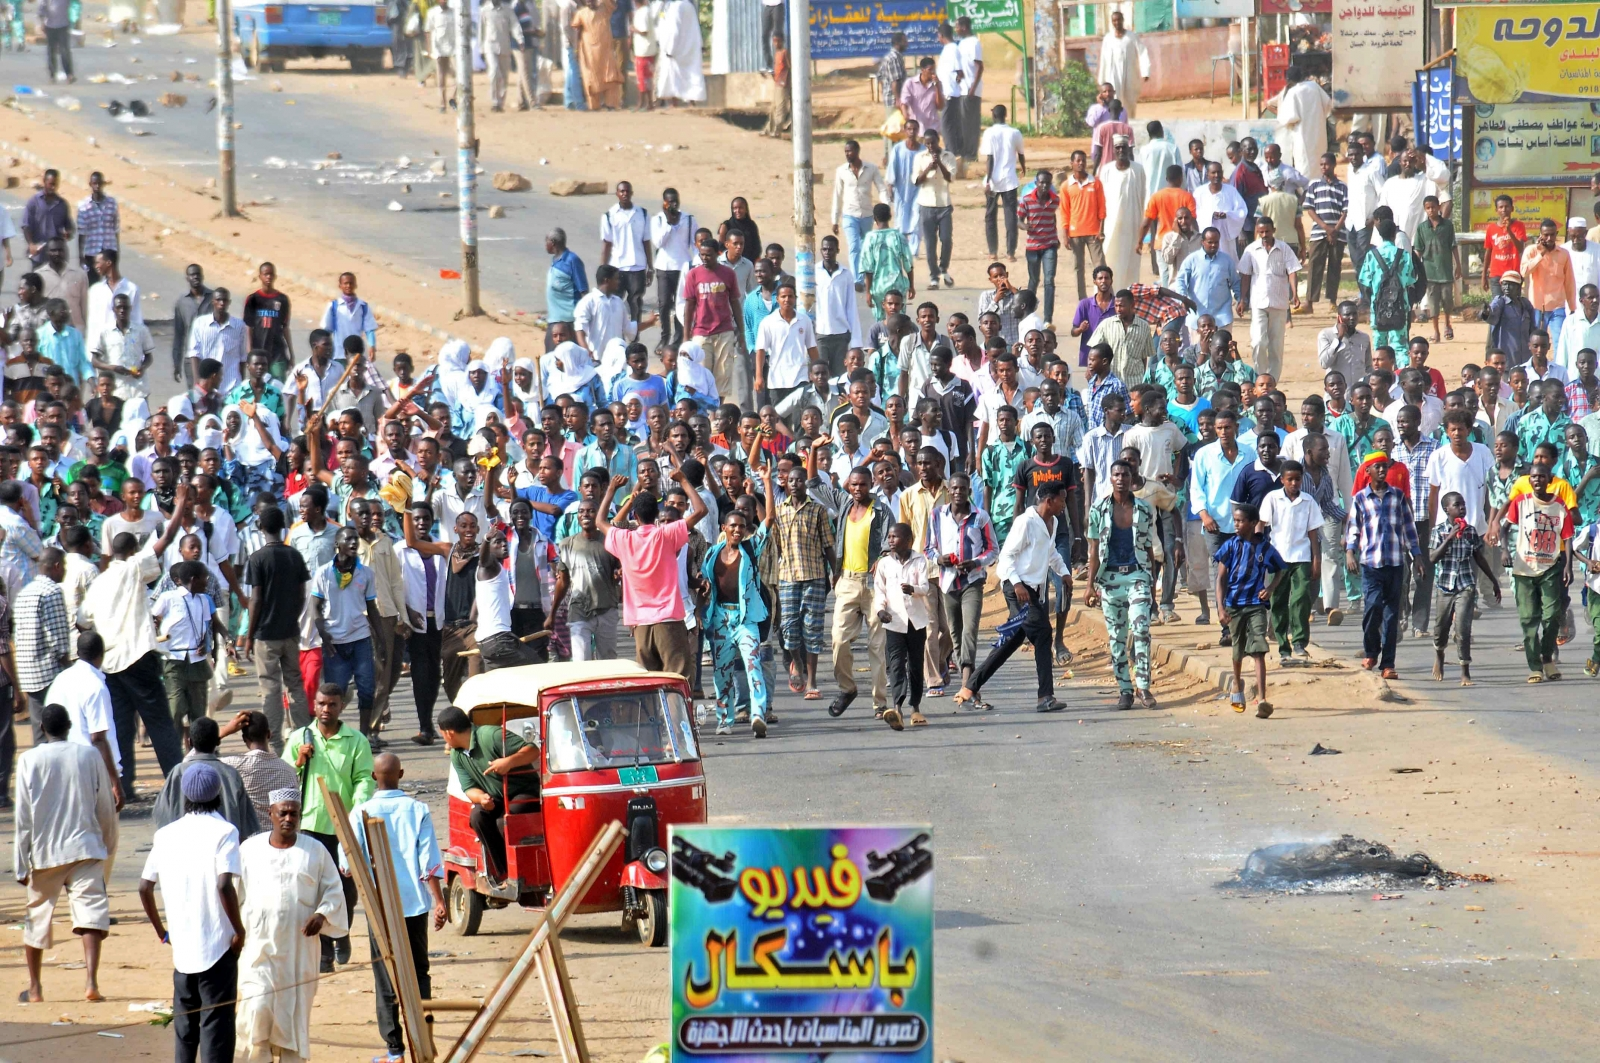 Sudan protests in Khartoum